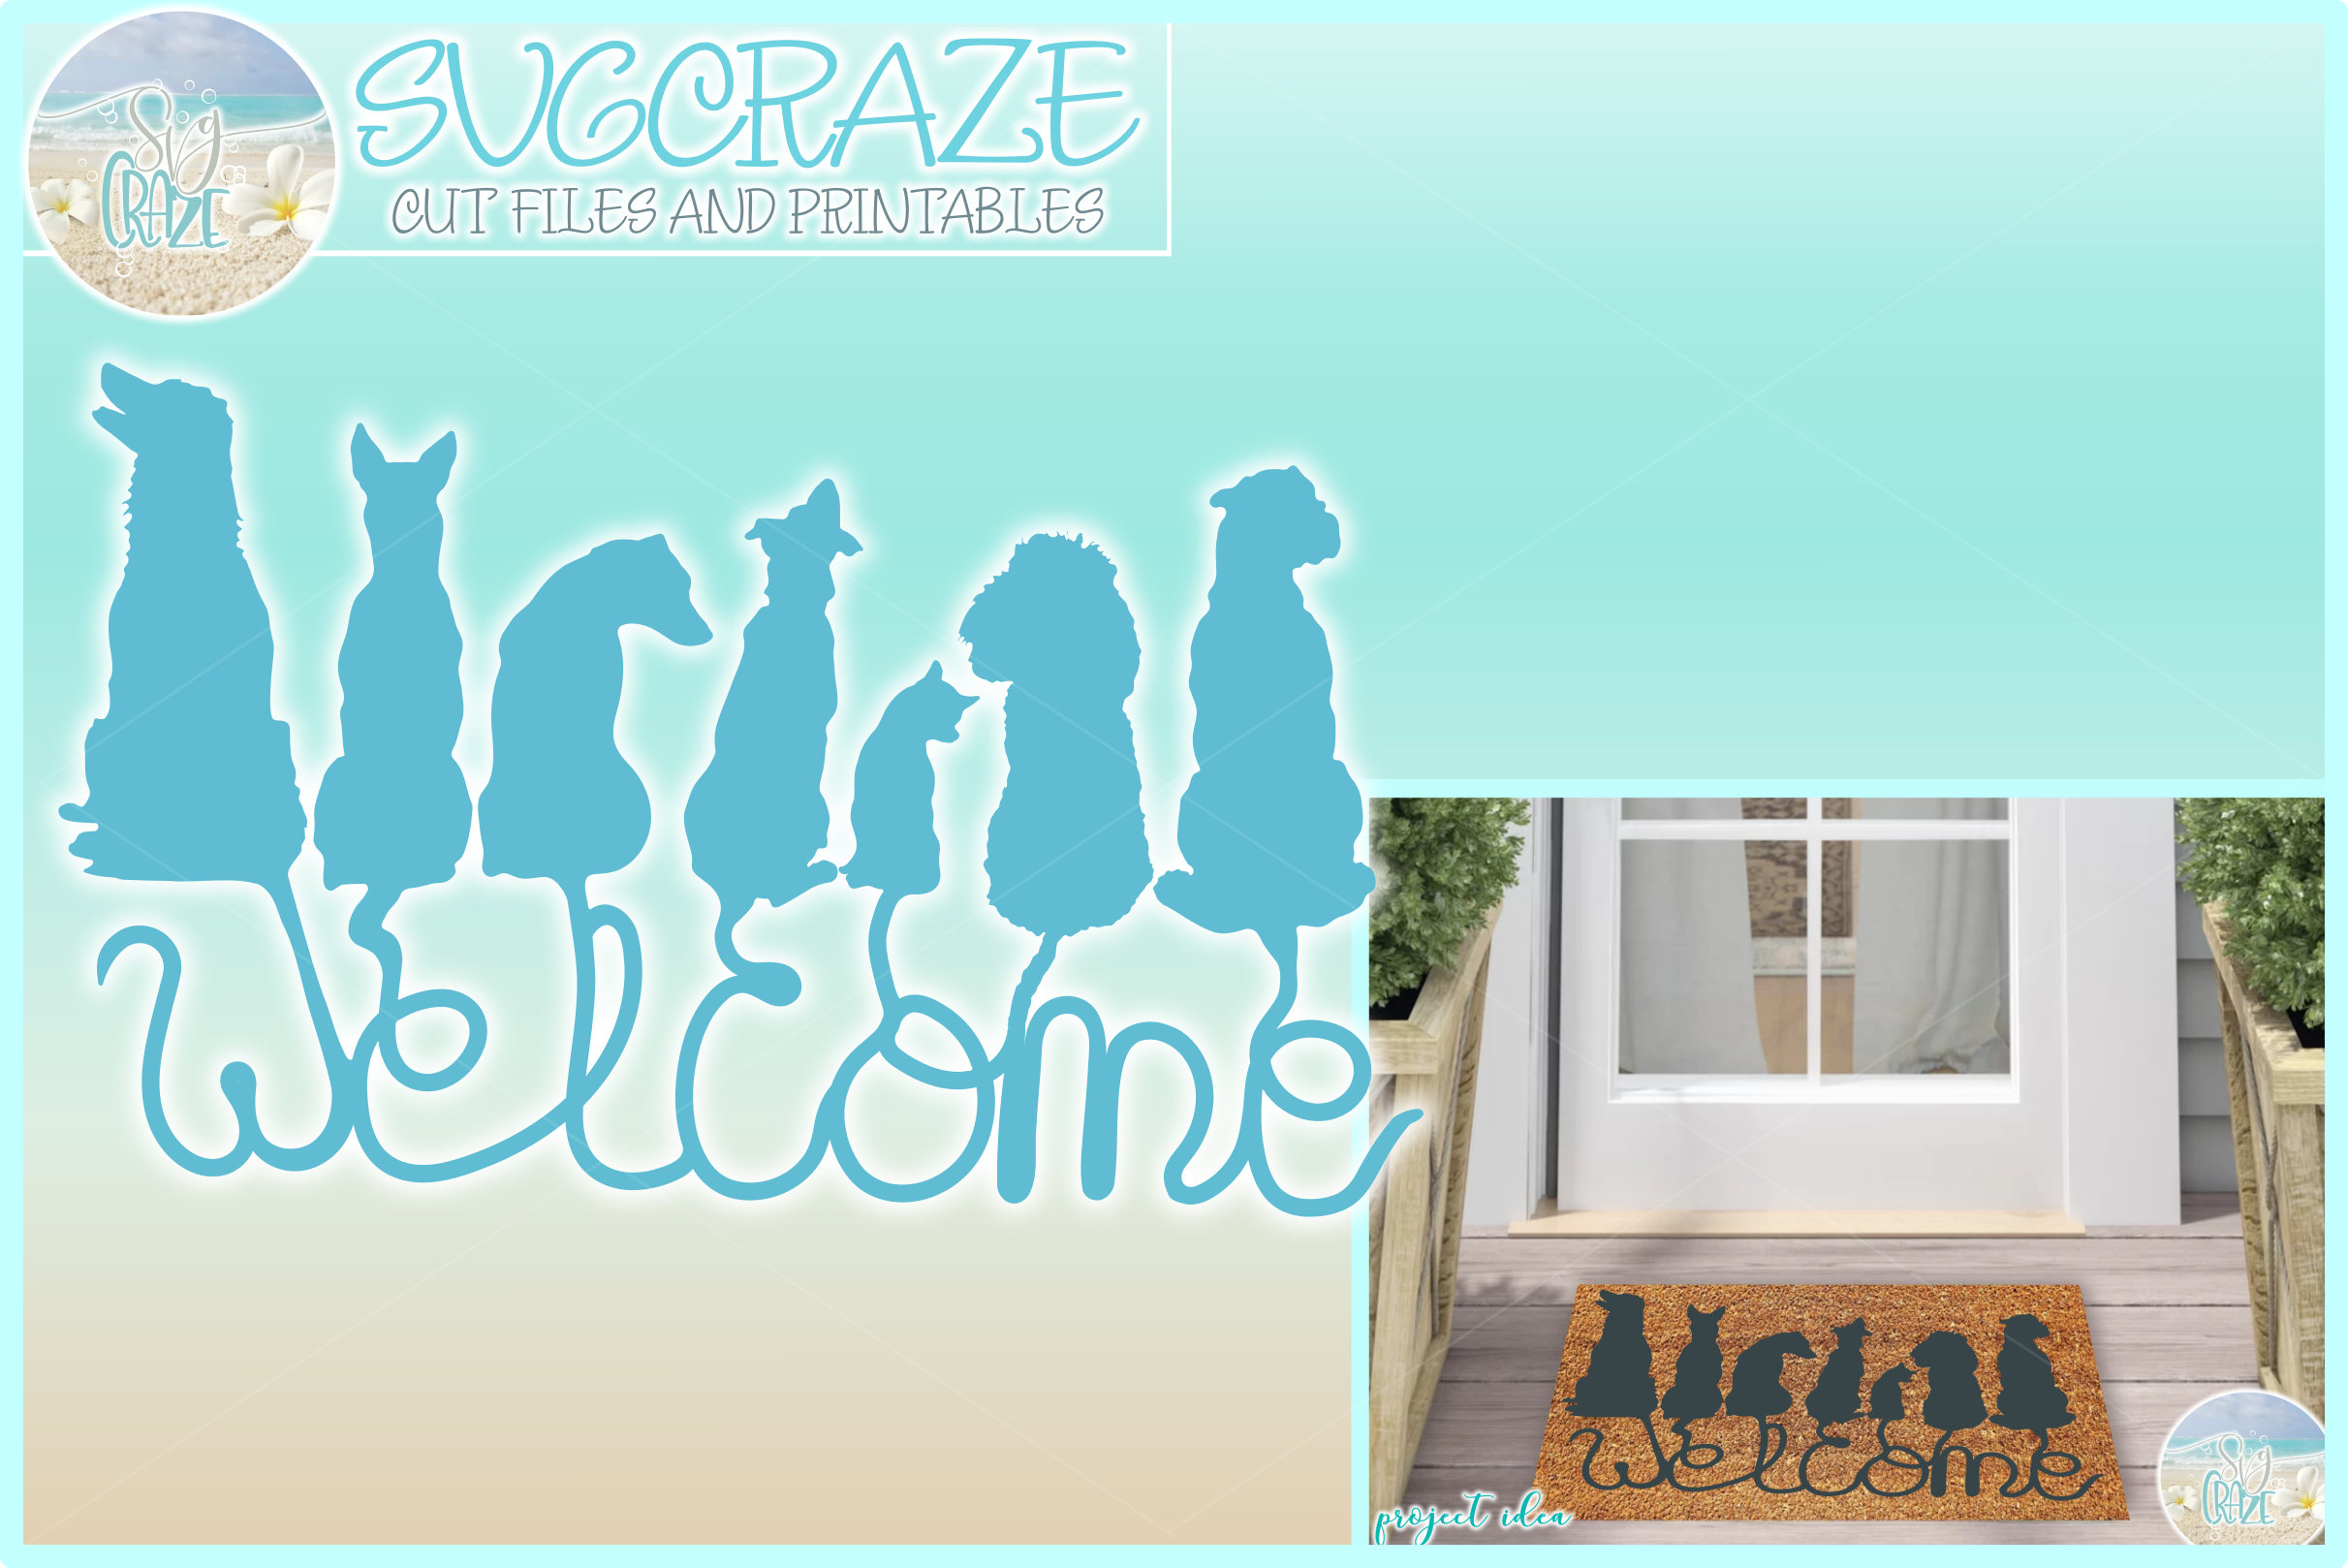 Dogs Welcome Coir Door Mat Design Svg Dxf Eps Png Pdf Files example image 1